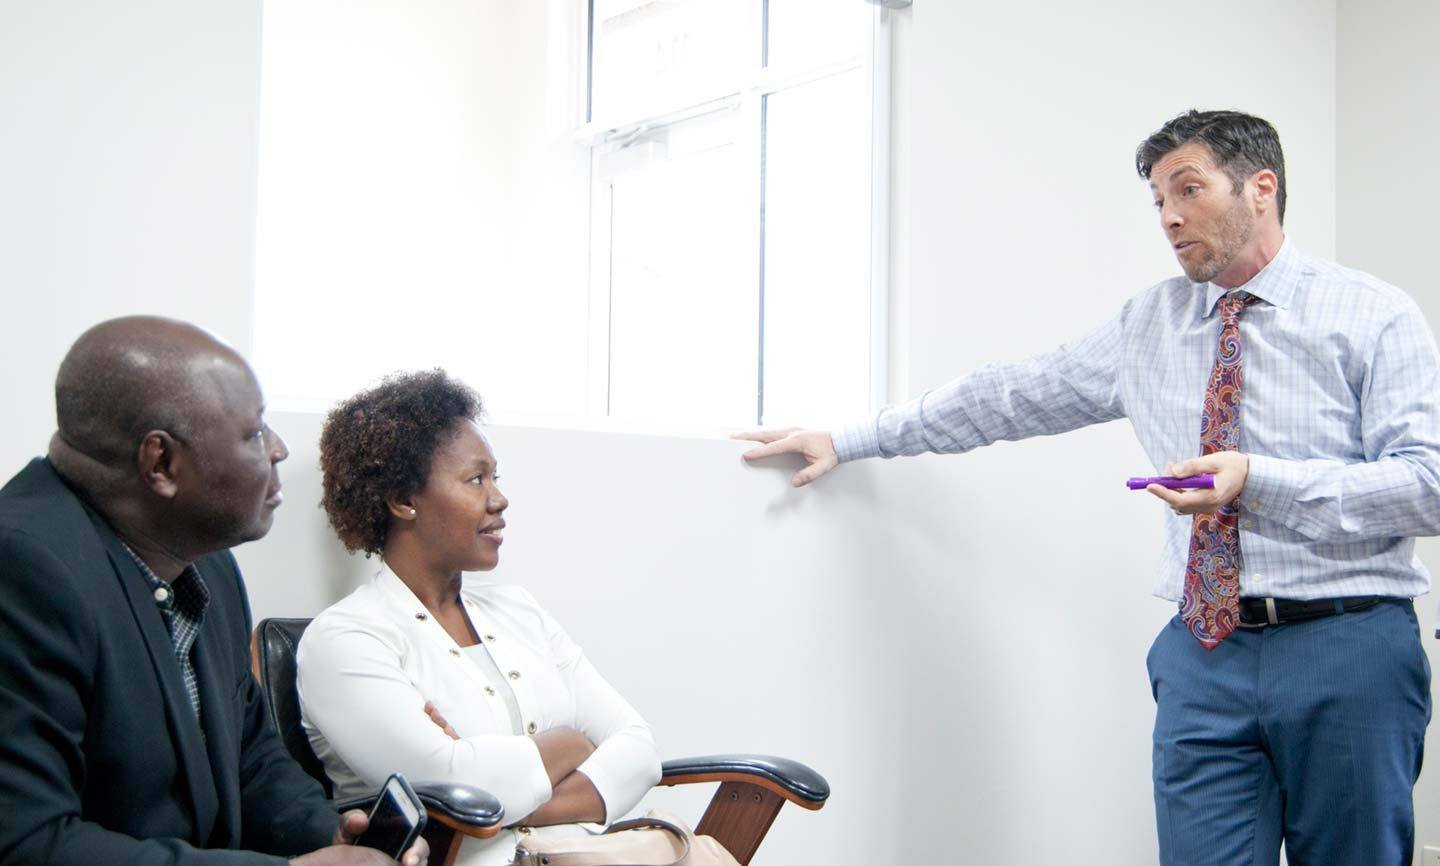 Steve Deitsch speaking with a male and female client in a meeting room